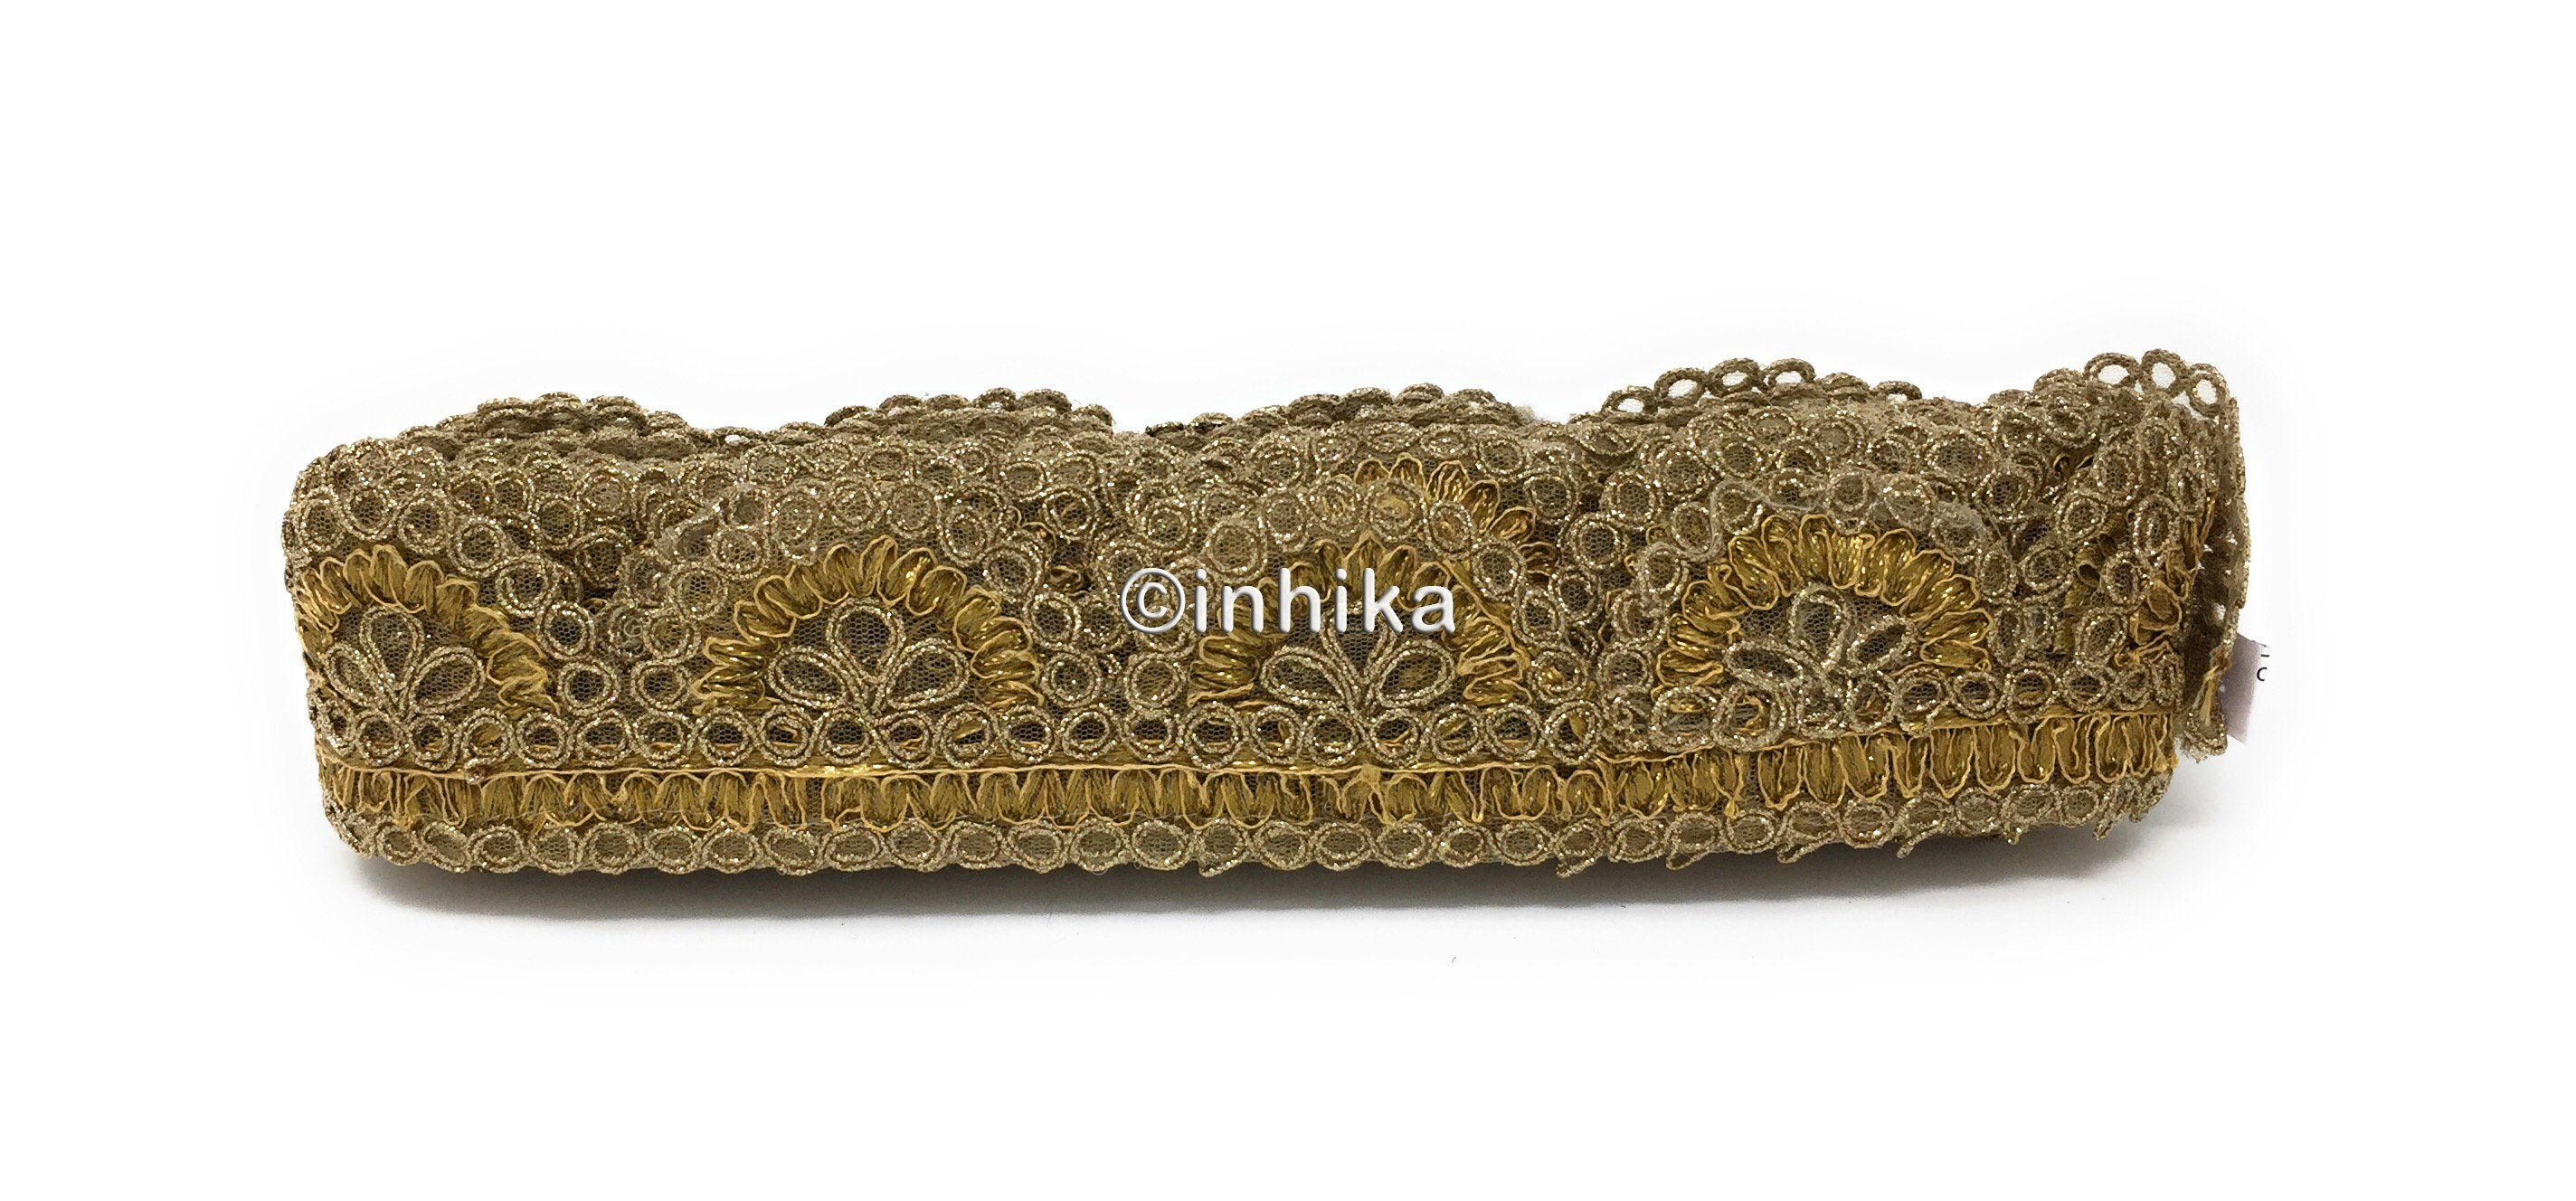 Lace n borders in pankha scallop design